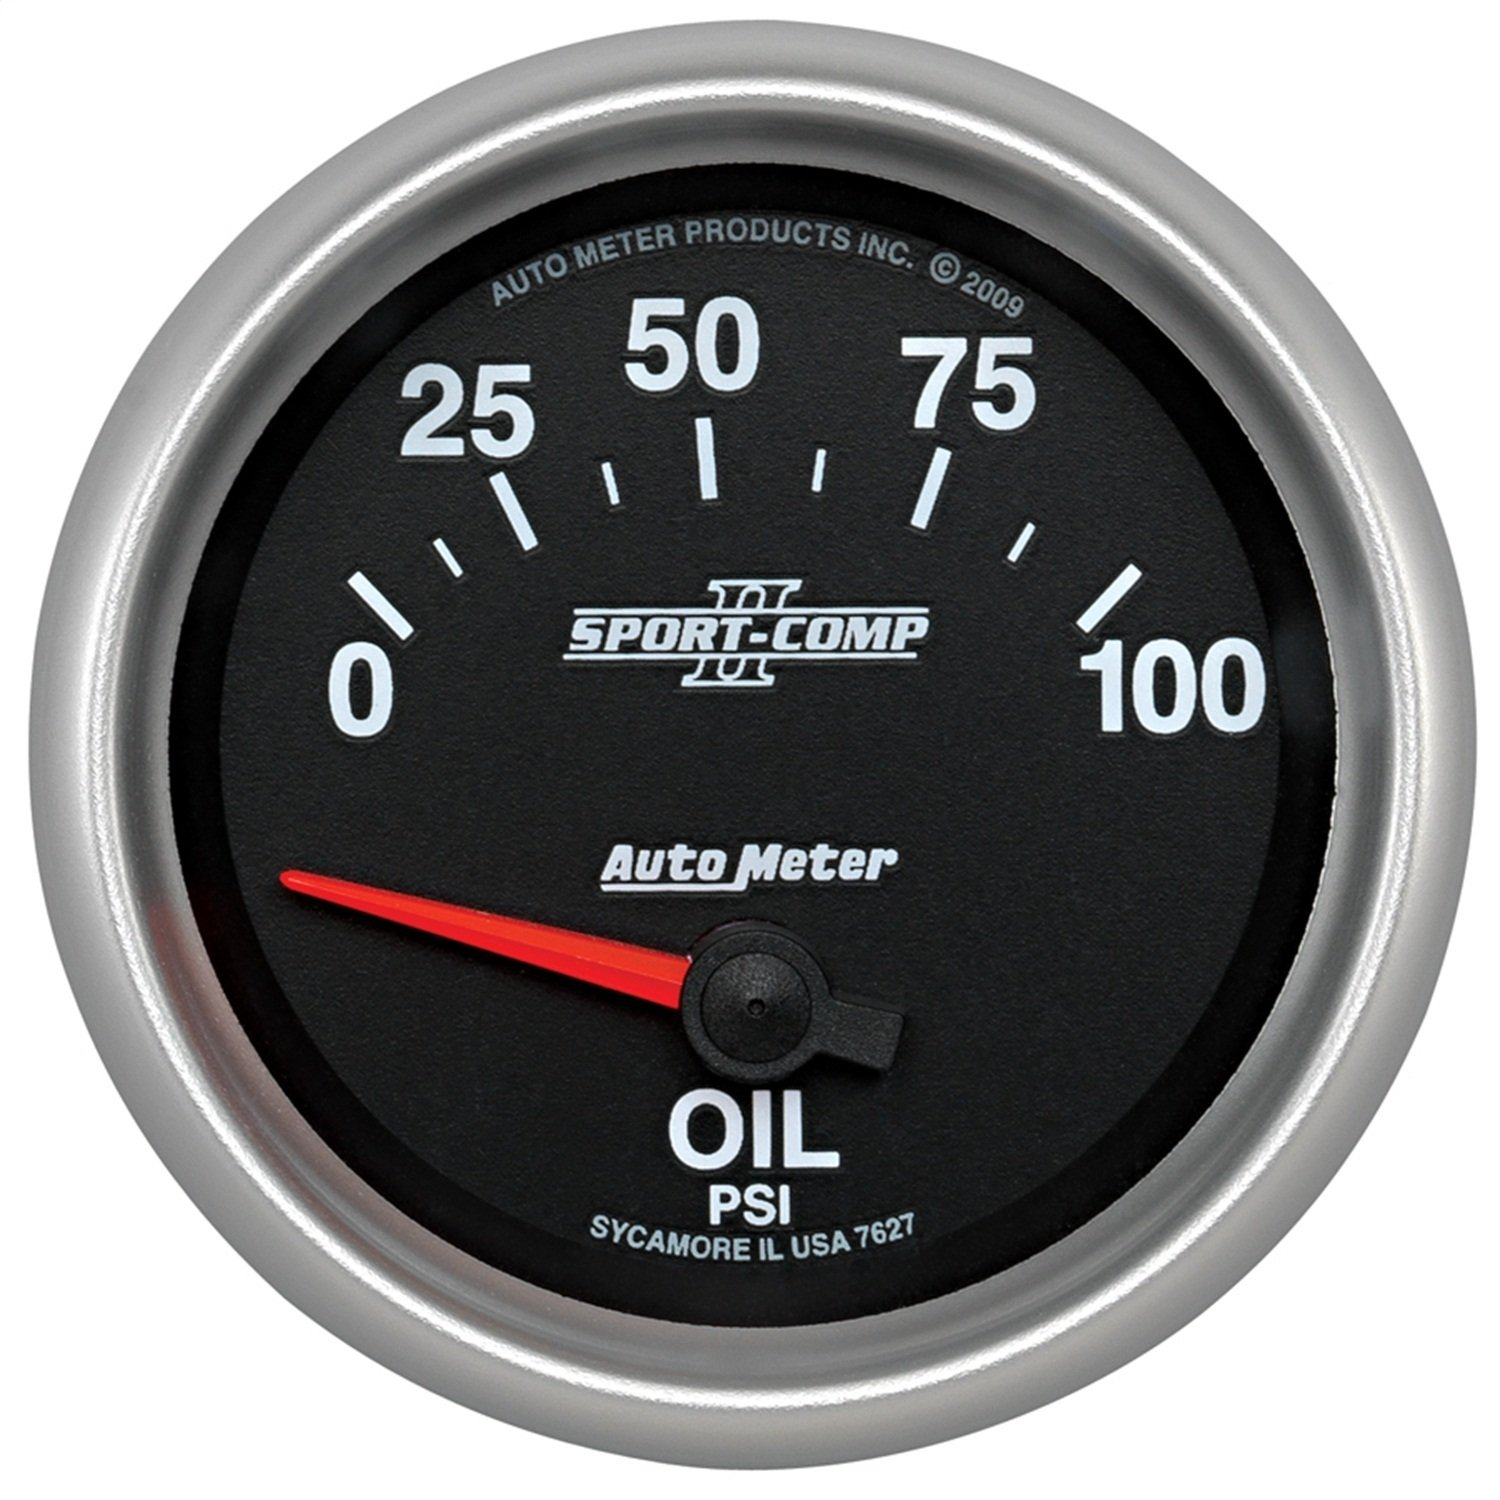 Auto Meter 7627 Sport-Comp II 2-5//8 0-100 PSI Short Sweep Electric Oil Pressure Gauge